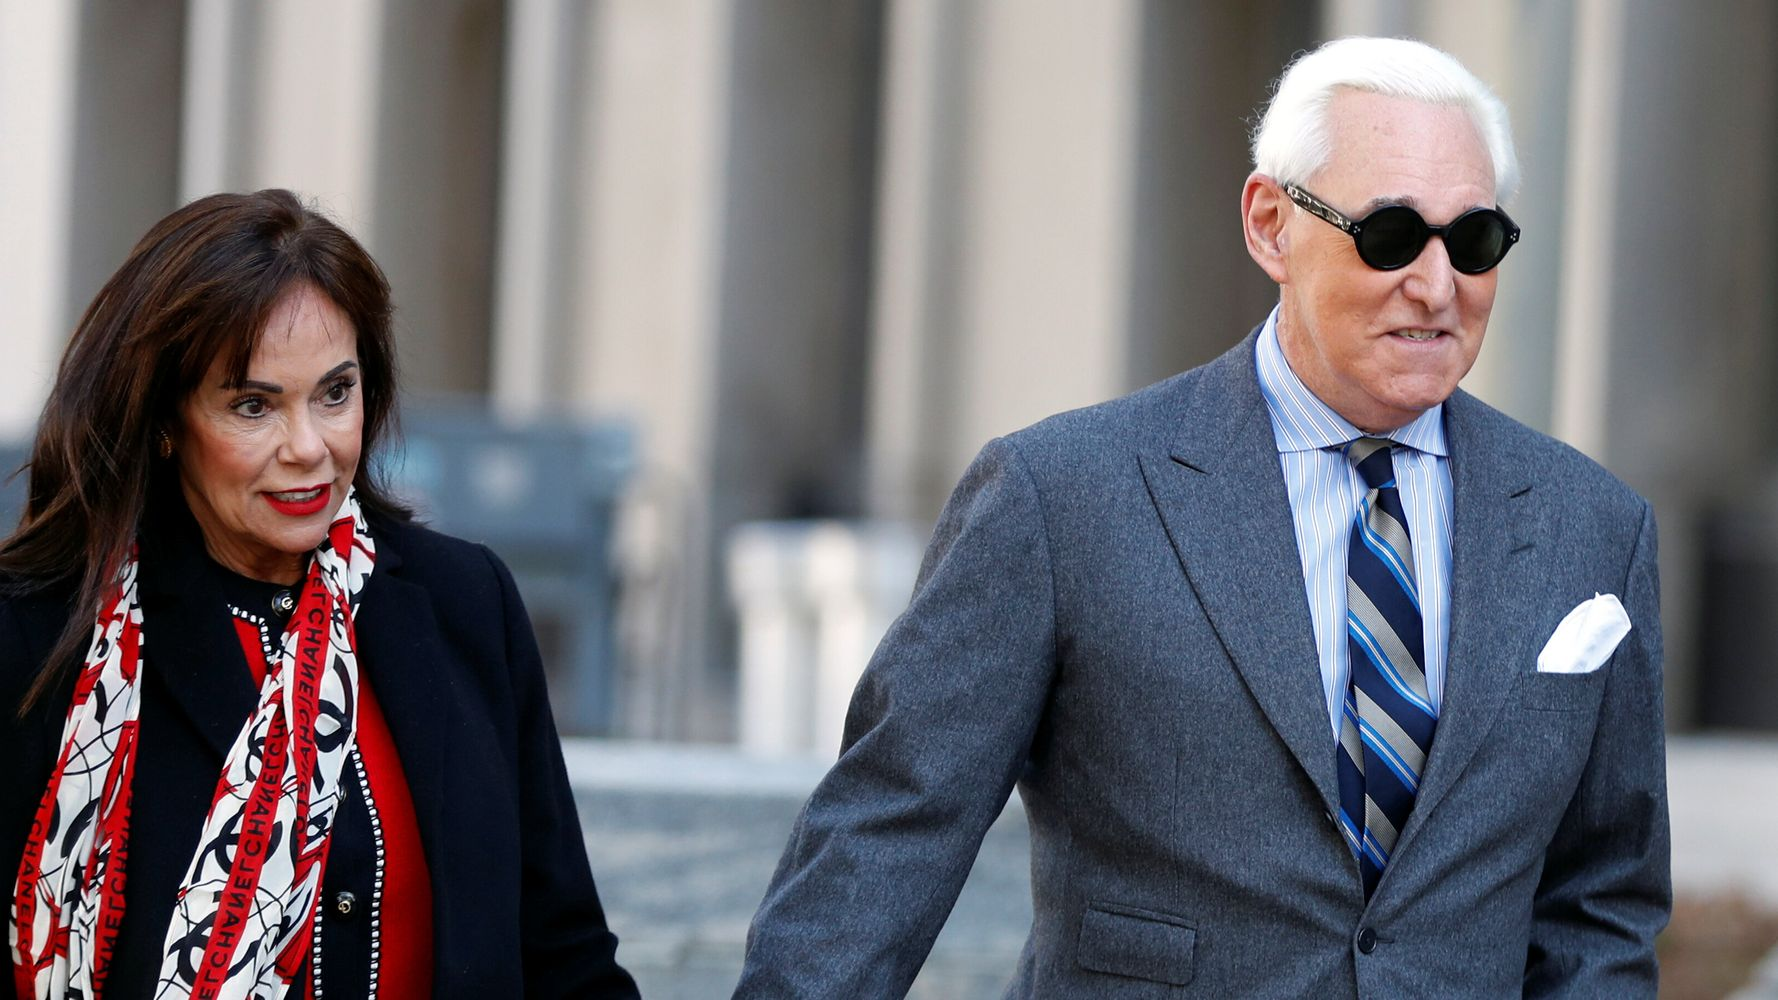 Roger Stone Guilty On Charges Of Lying To Congress